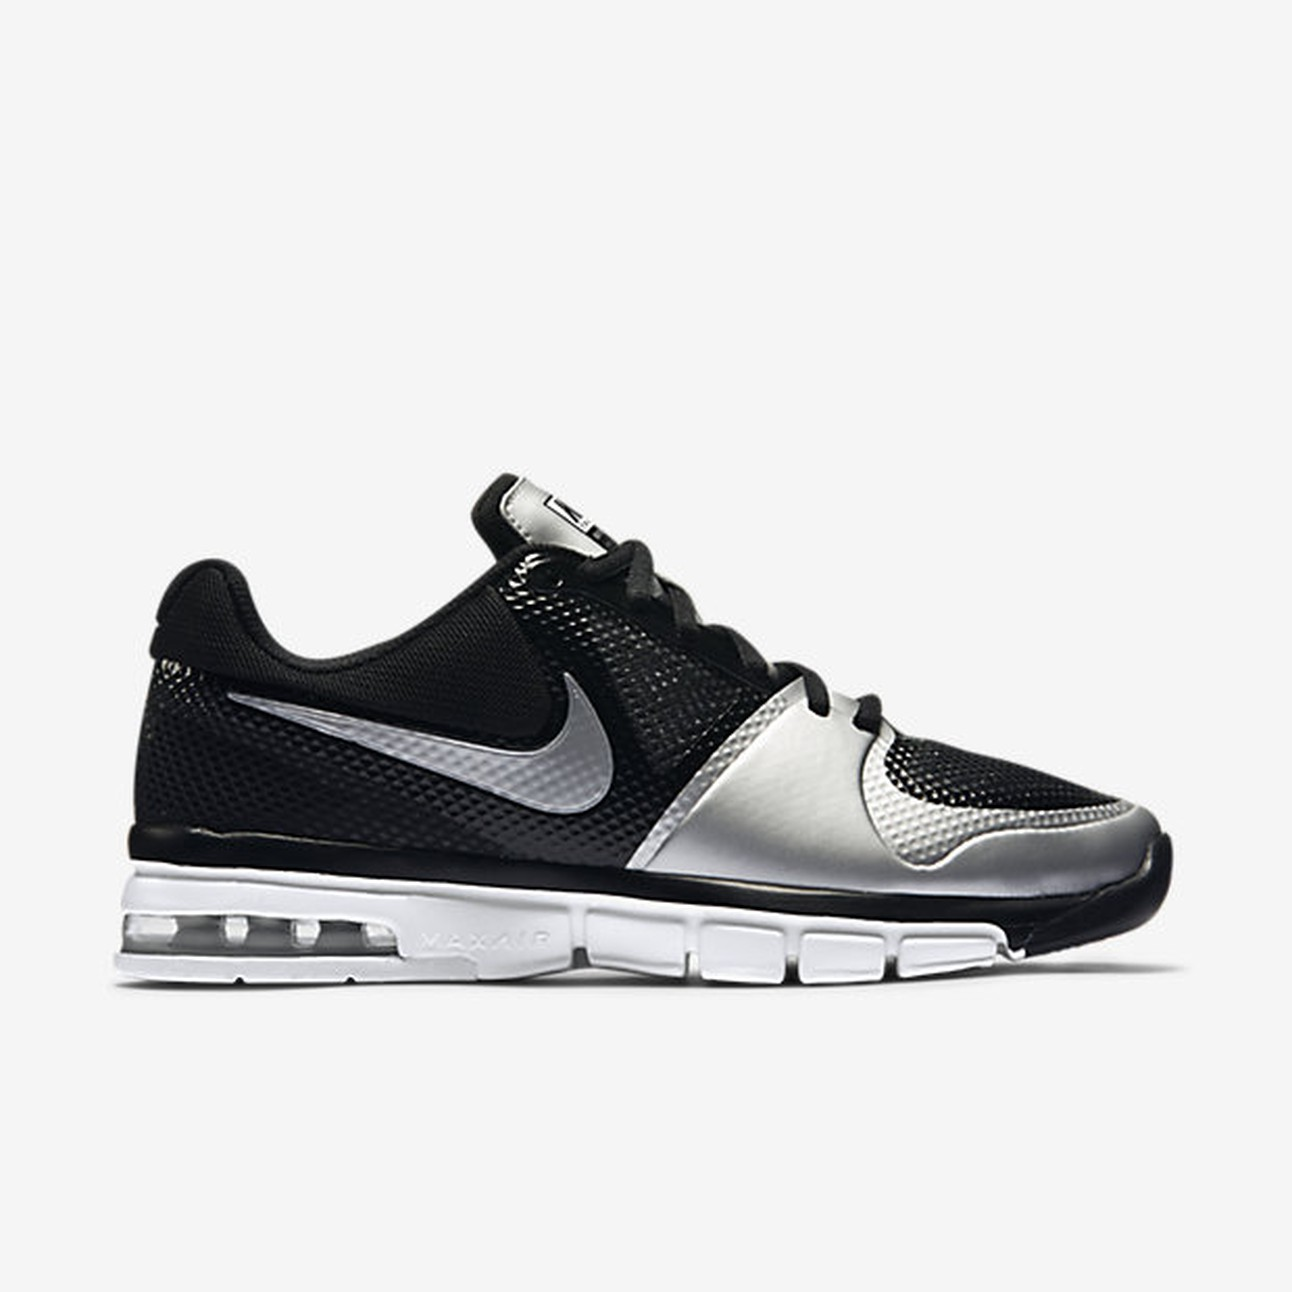 7b41aa2fb86c Nike Air Extreme Volley